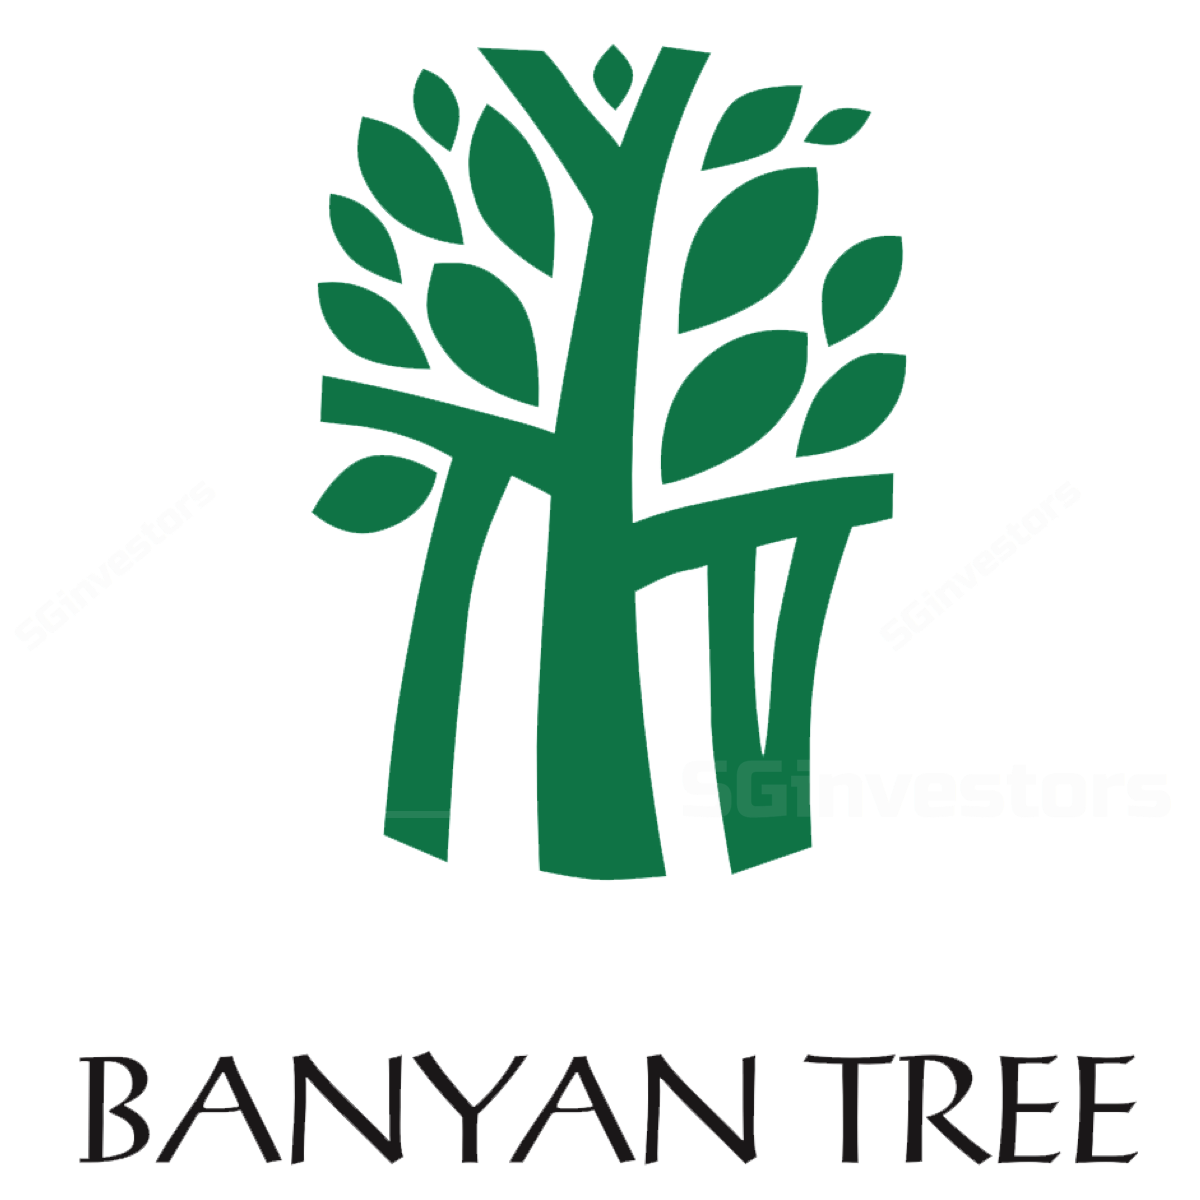 Banyan Tree Holdings Limited - Phillip Securities 2017-11-13: Patience As Partnerships Bear Fruit